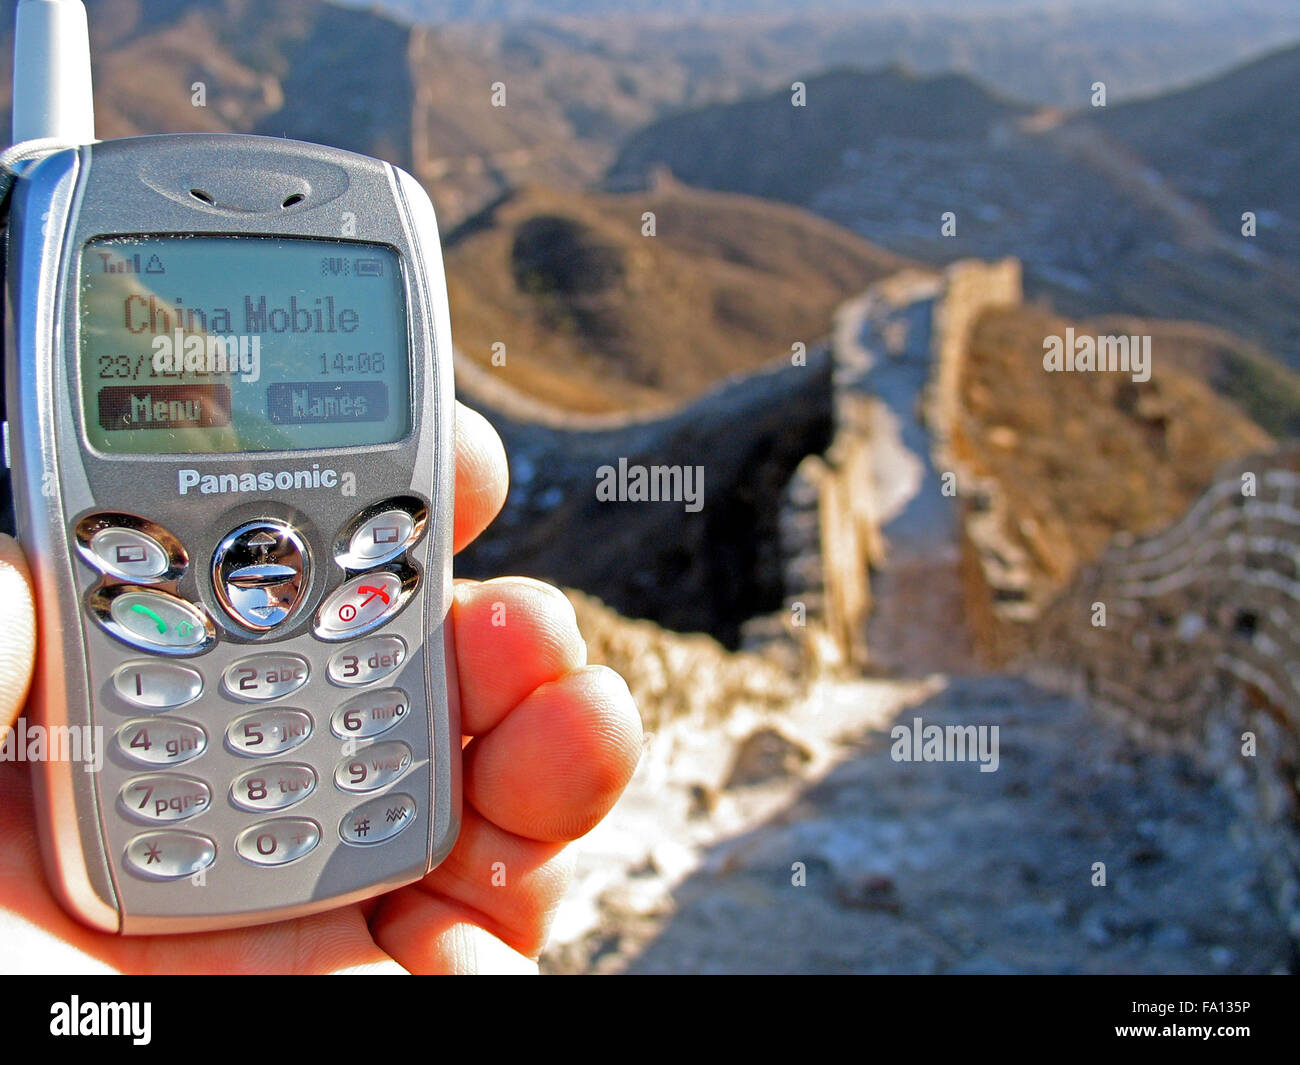 China Mobile phone on Great Wall of China Stock Photo: 92222866 - Alamy